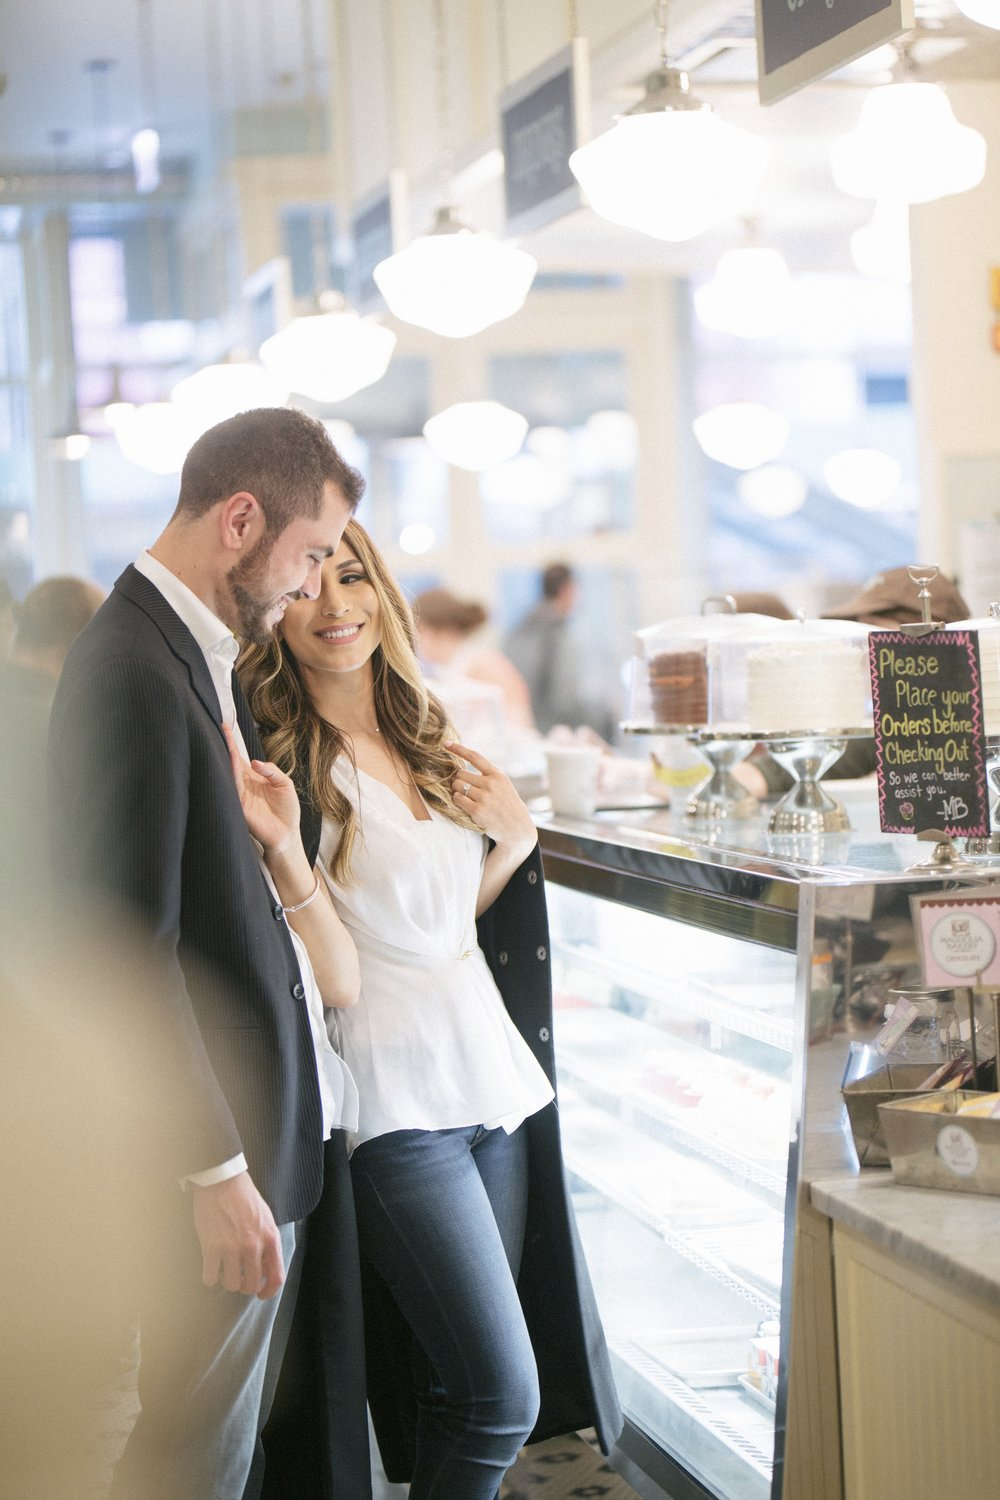 Magnolia Bakery Cafe Chicago Engagement Photography by Le Cape Weddings